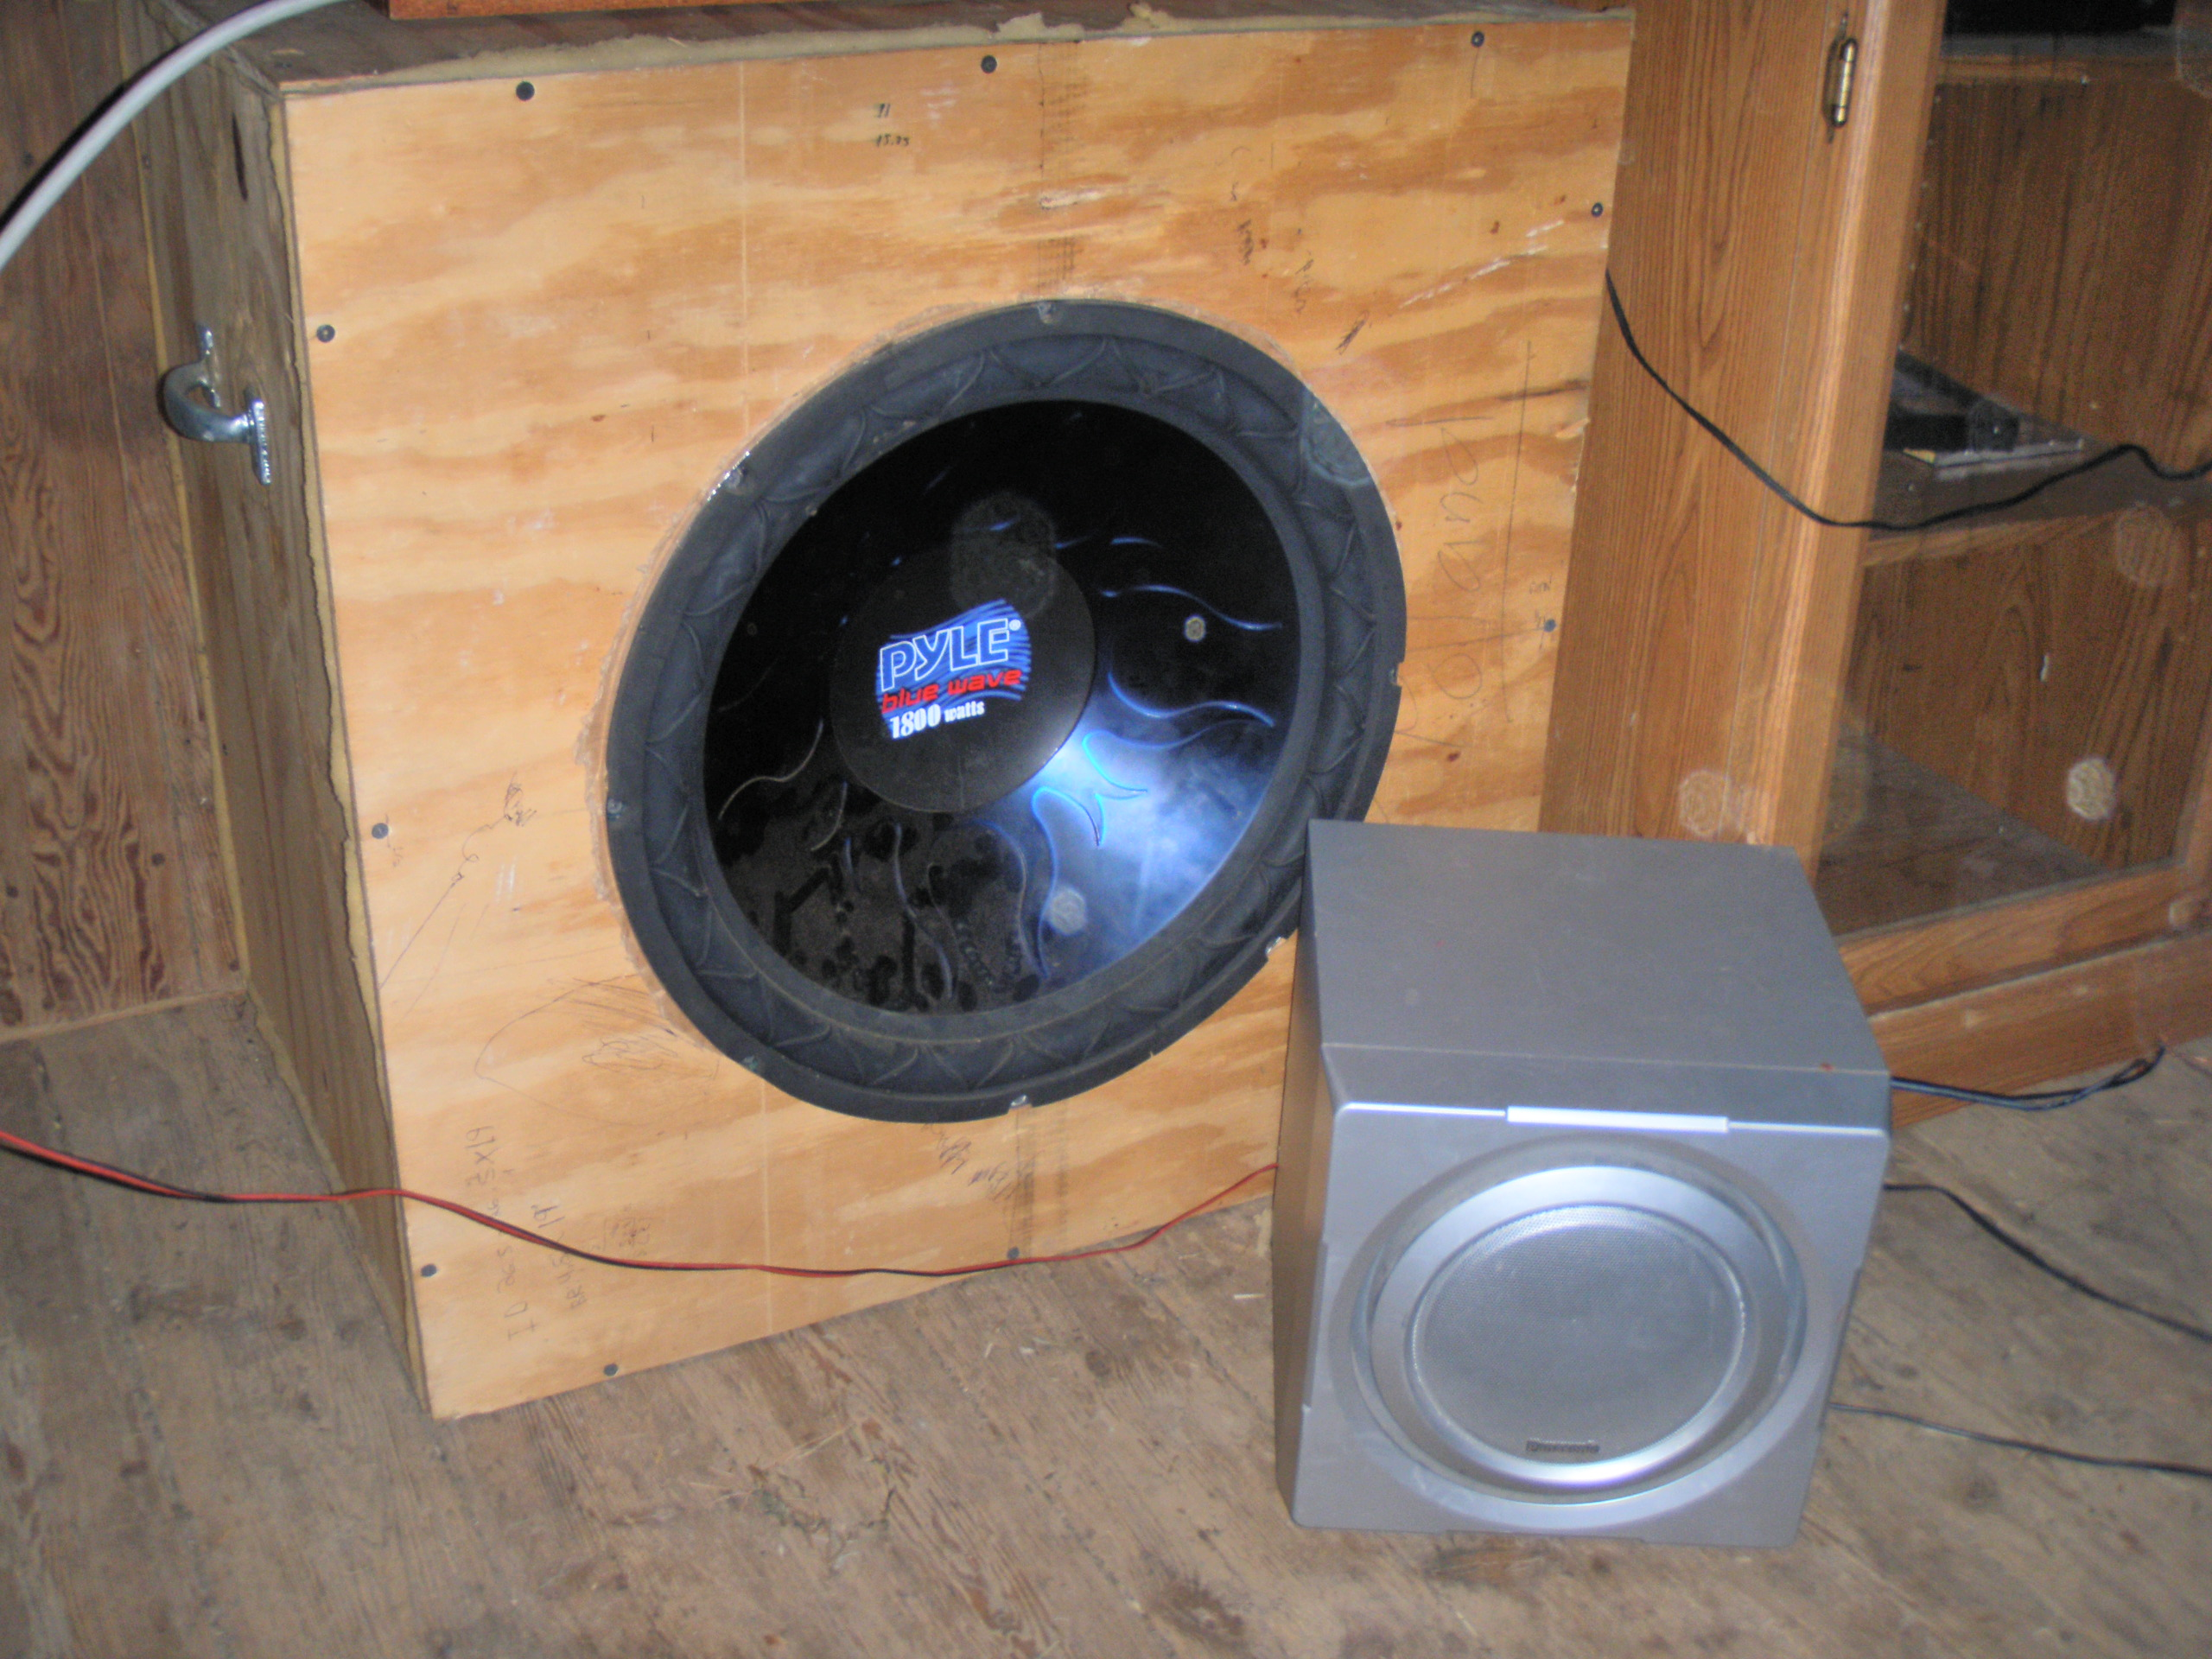 File:Large infinite baffle subwoofer with 18 inch woofer driver JPG